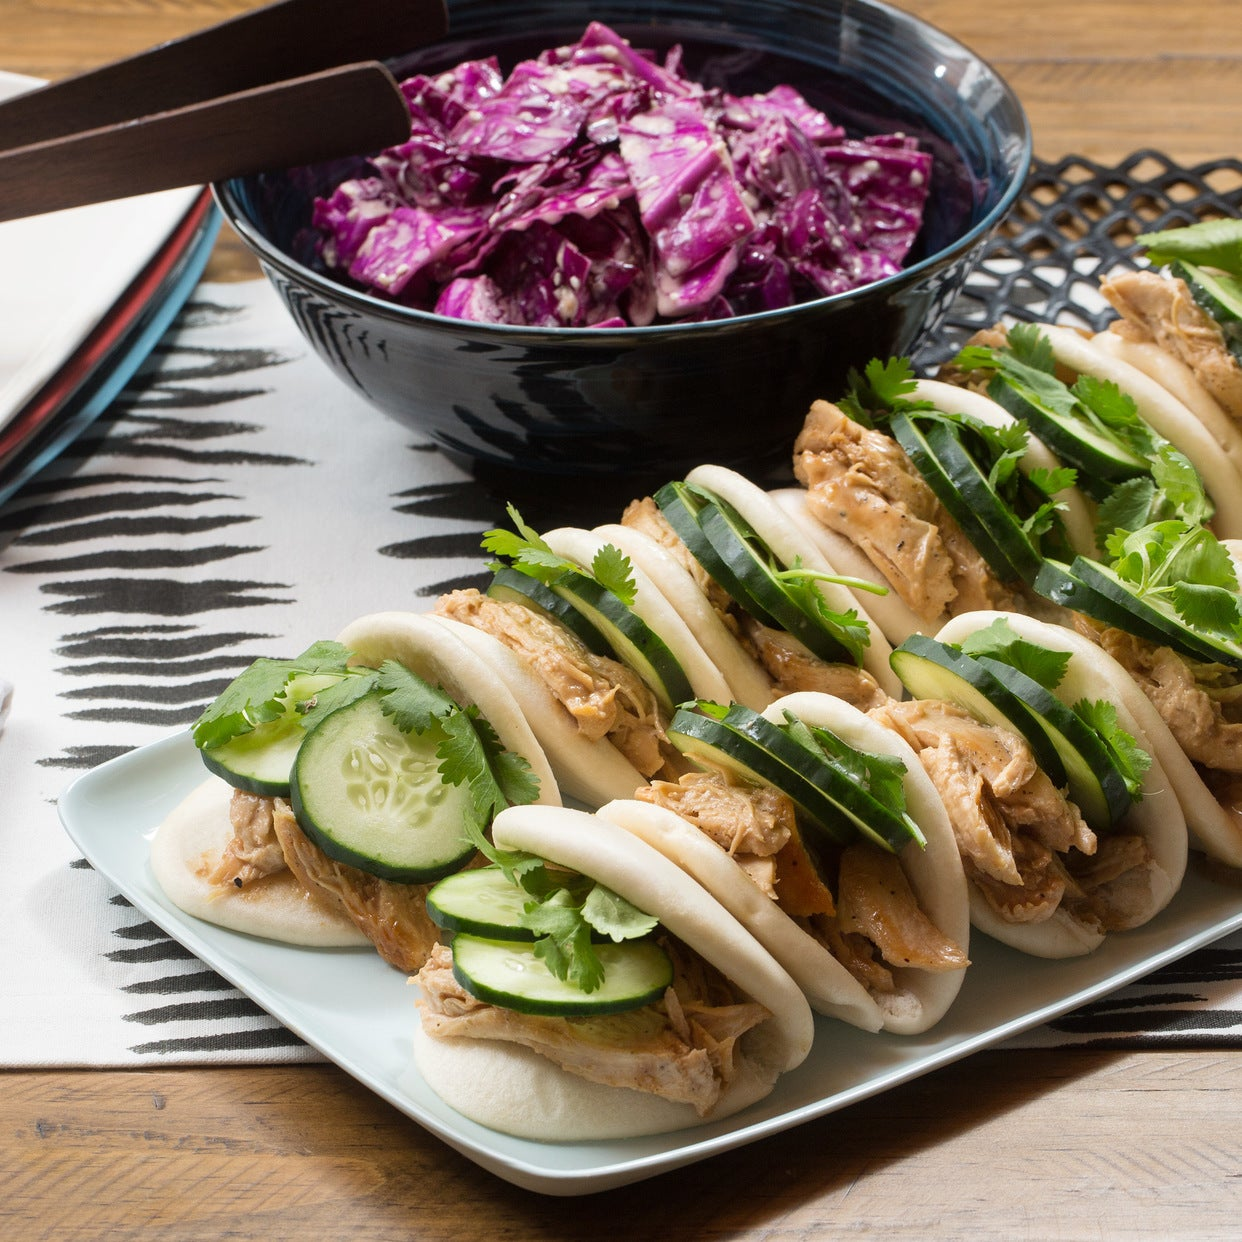 Hoisin Chicken Steam Buns with Miso-Sesame Slaw, Cucumber & Cilantro